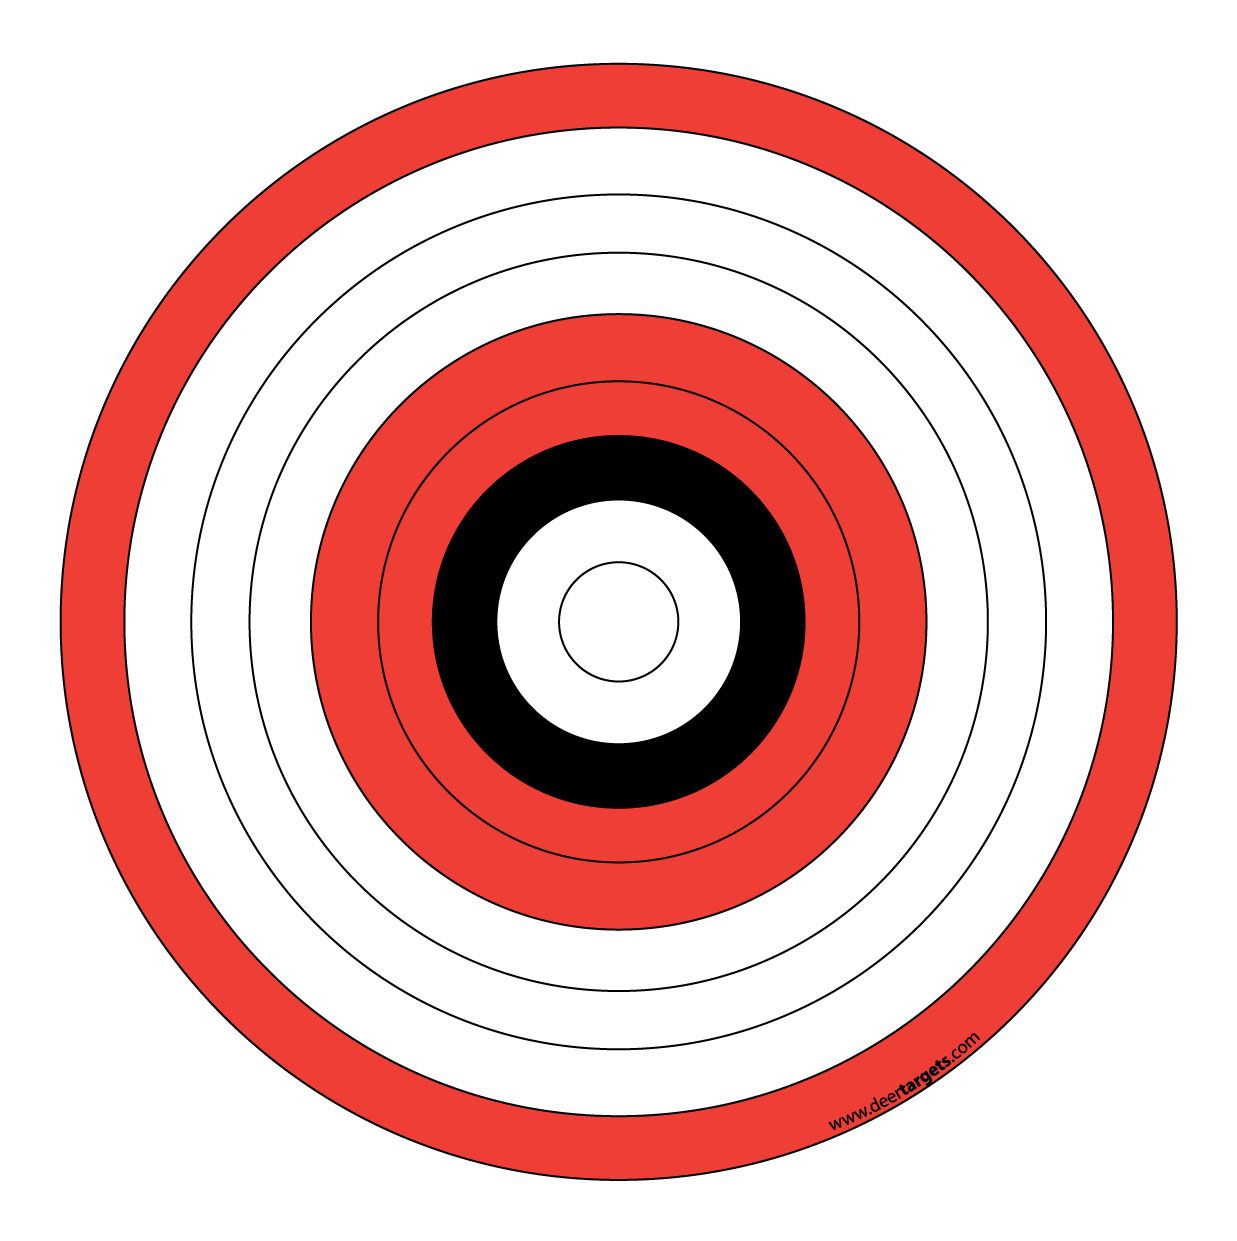 Printable archery targets archery target stands for Bullseye template printable